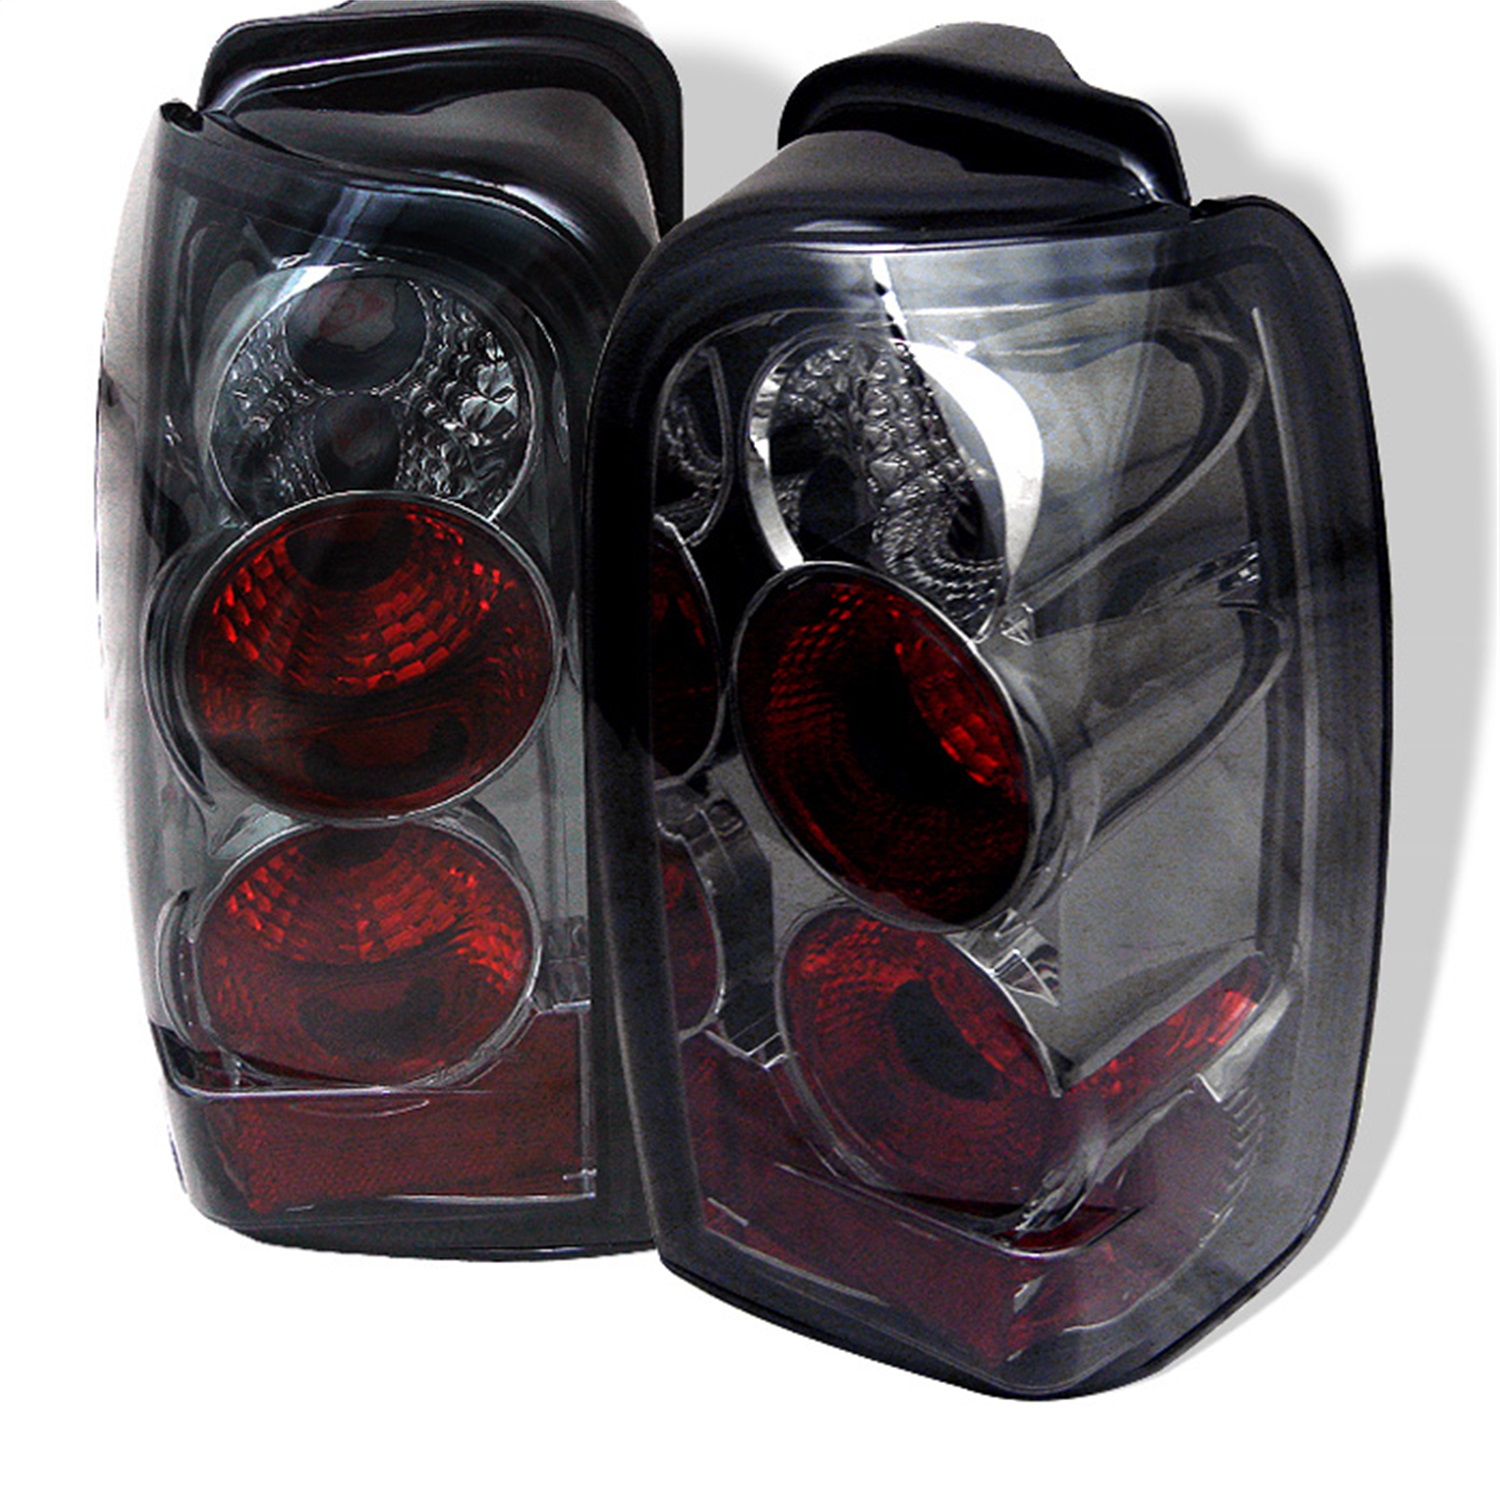 Spyder Auto 5007315 Euro Style Tail Lights Fits 96-02 4Runner